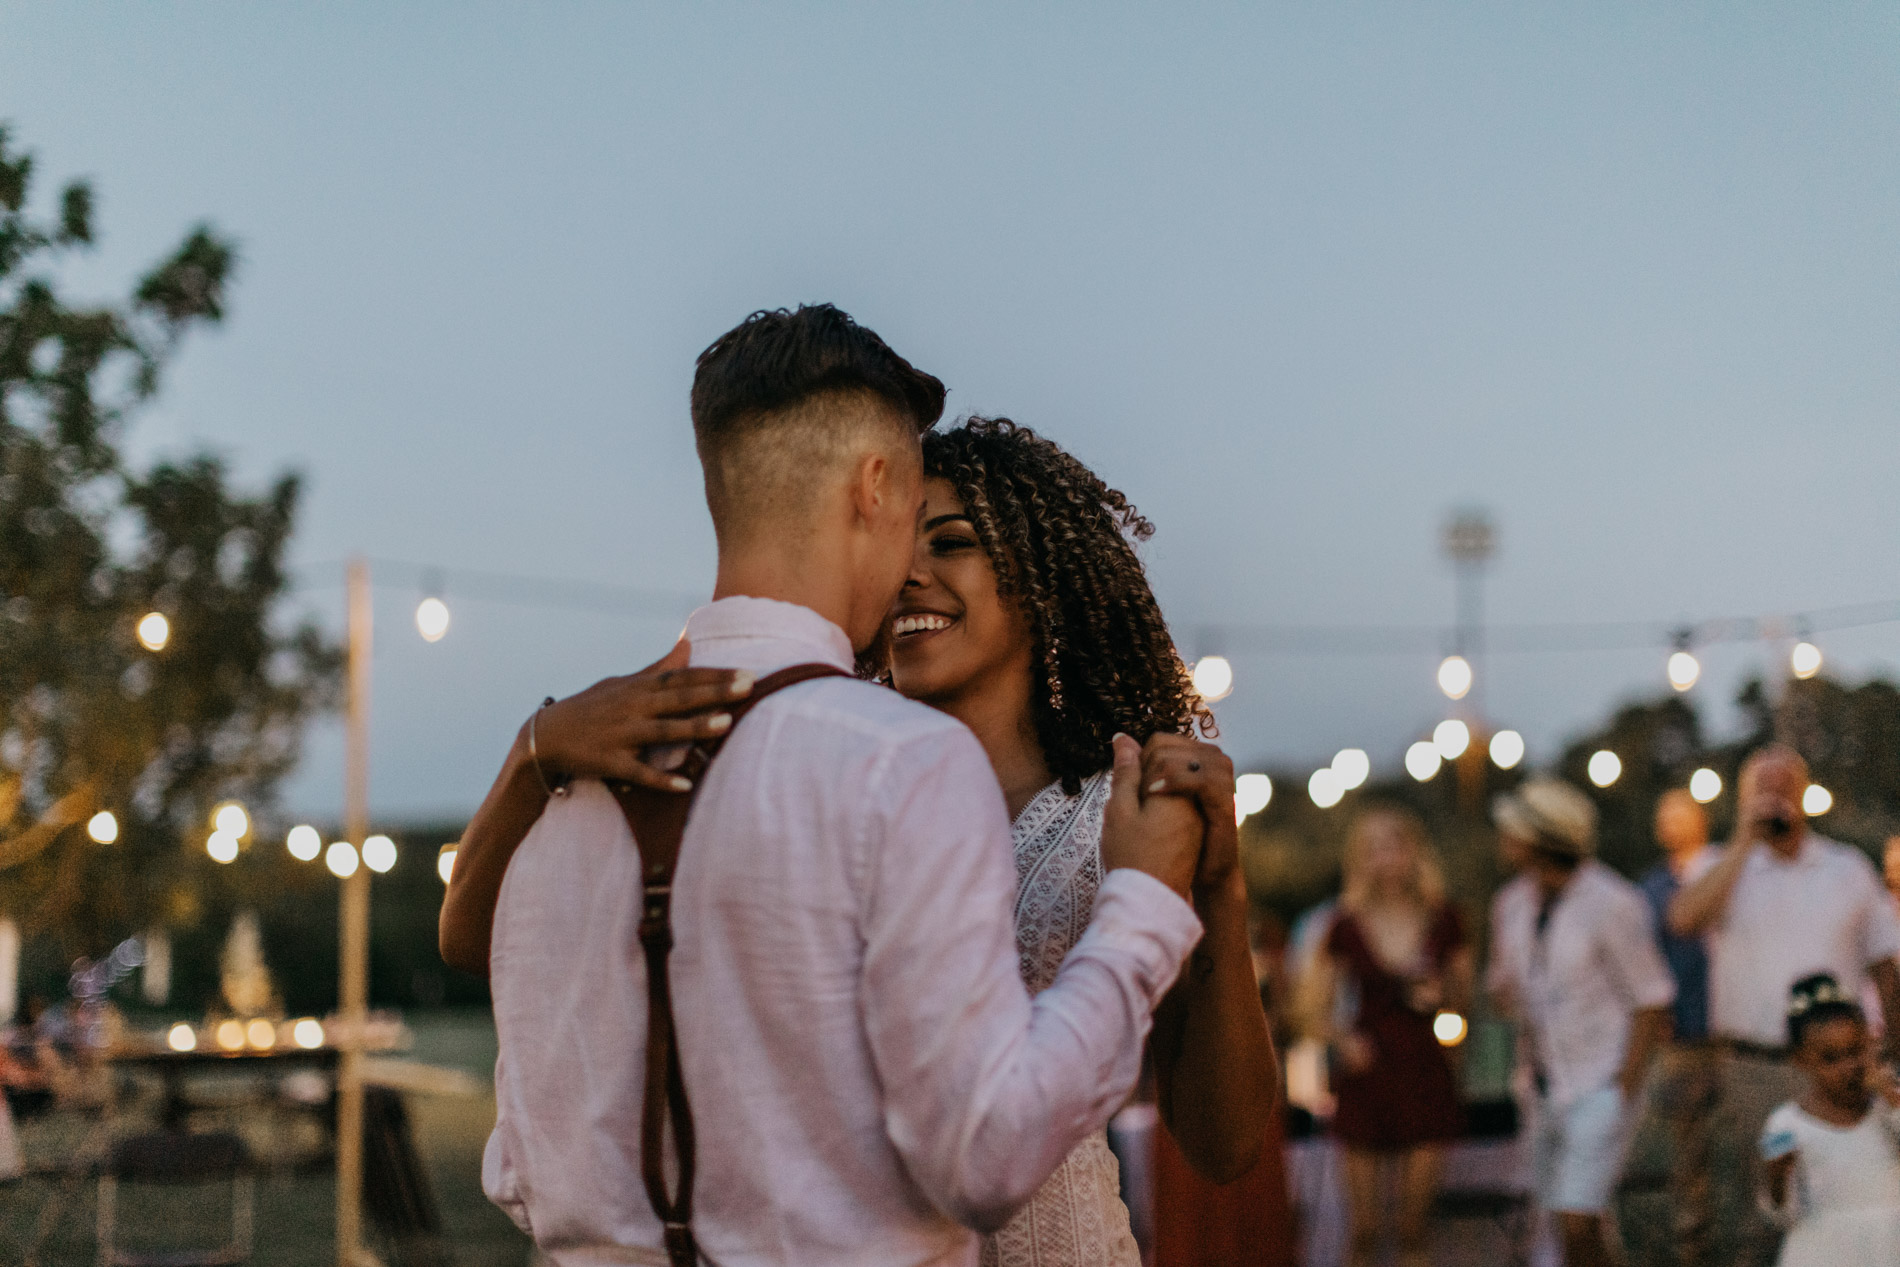 Bride and groom dancing in East Texas for bohemian wedding day